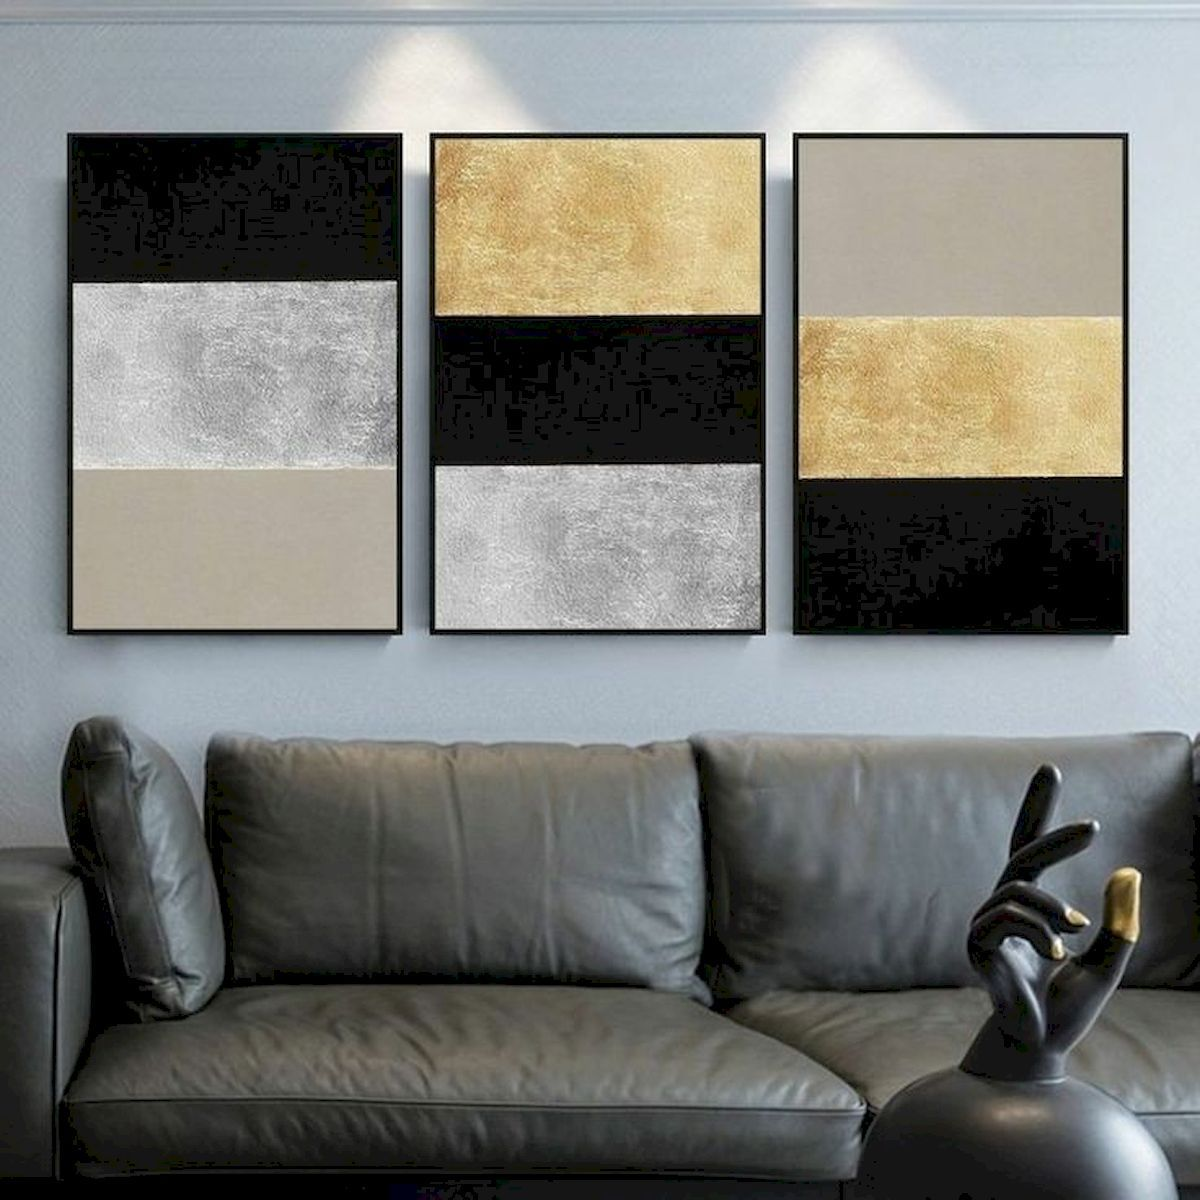 55 Easy Diy Canvas Painting Ideas To Decorate Your Home Canvas Painting Diy 3 Piece Canvas Art Acrylic Painting Canvas